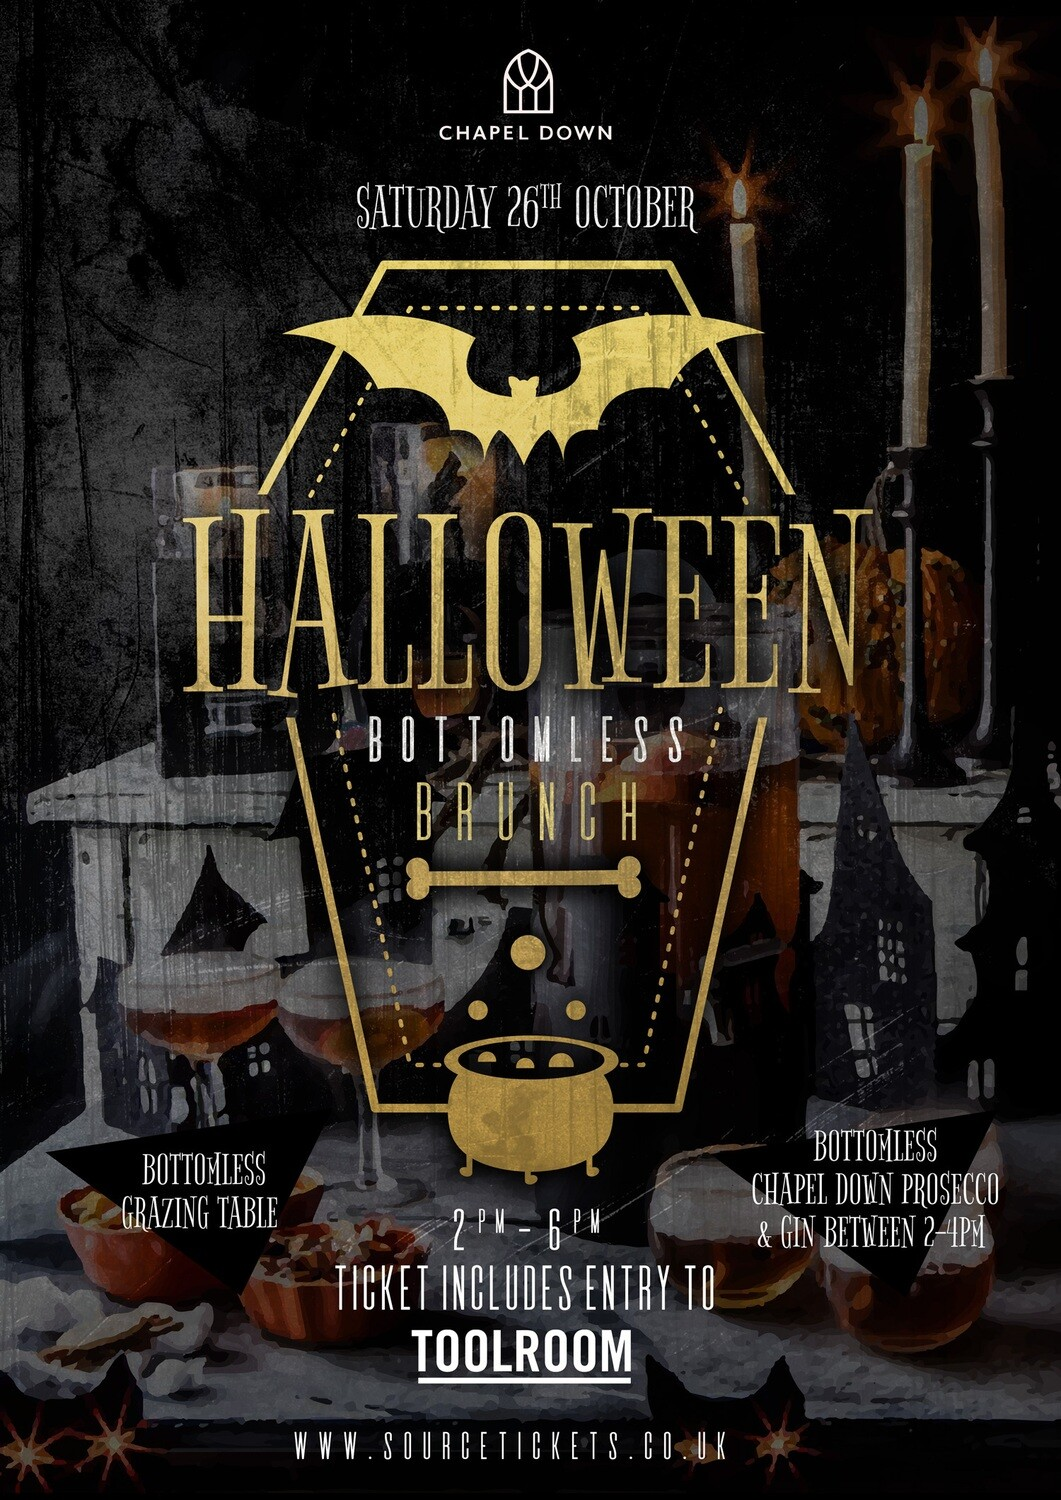 Saturday 26th October 2019 - Halloween Prosecco & Gin Bottomless Brunch at The Source